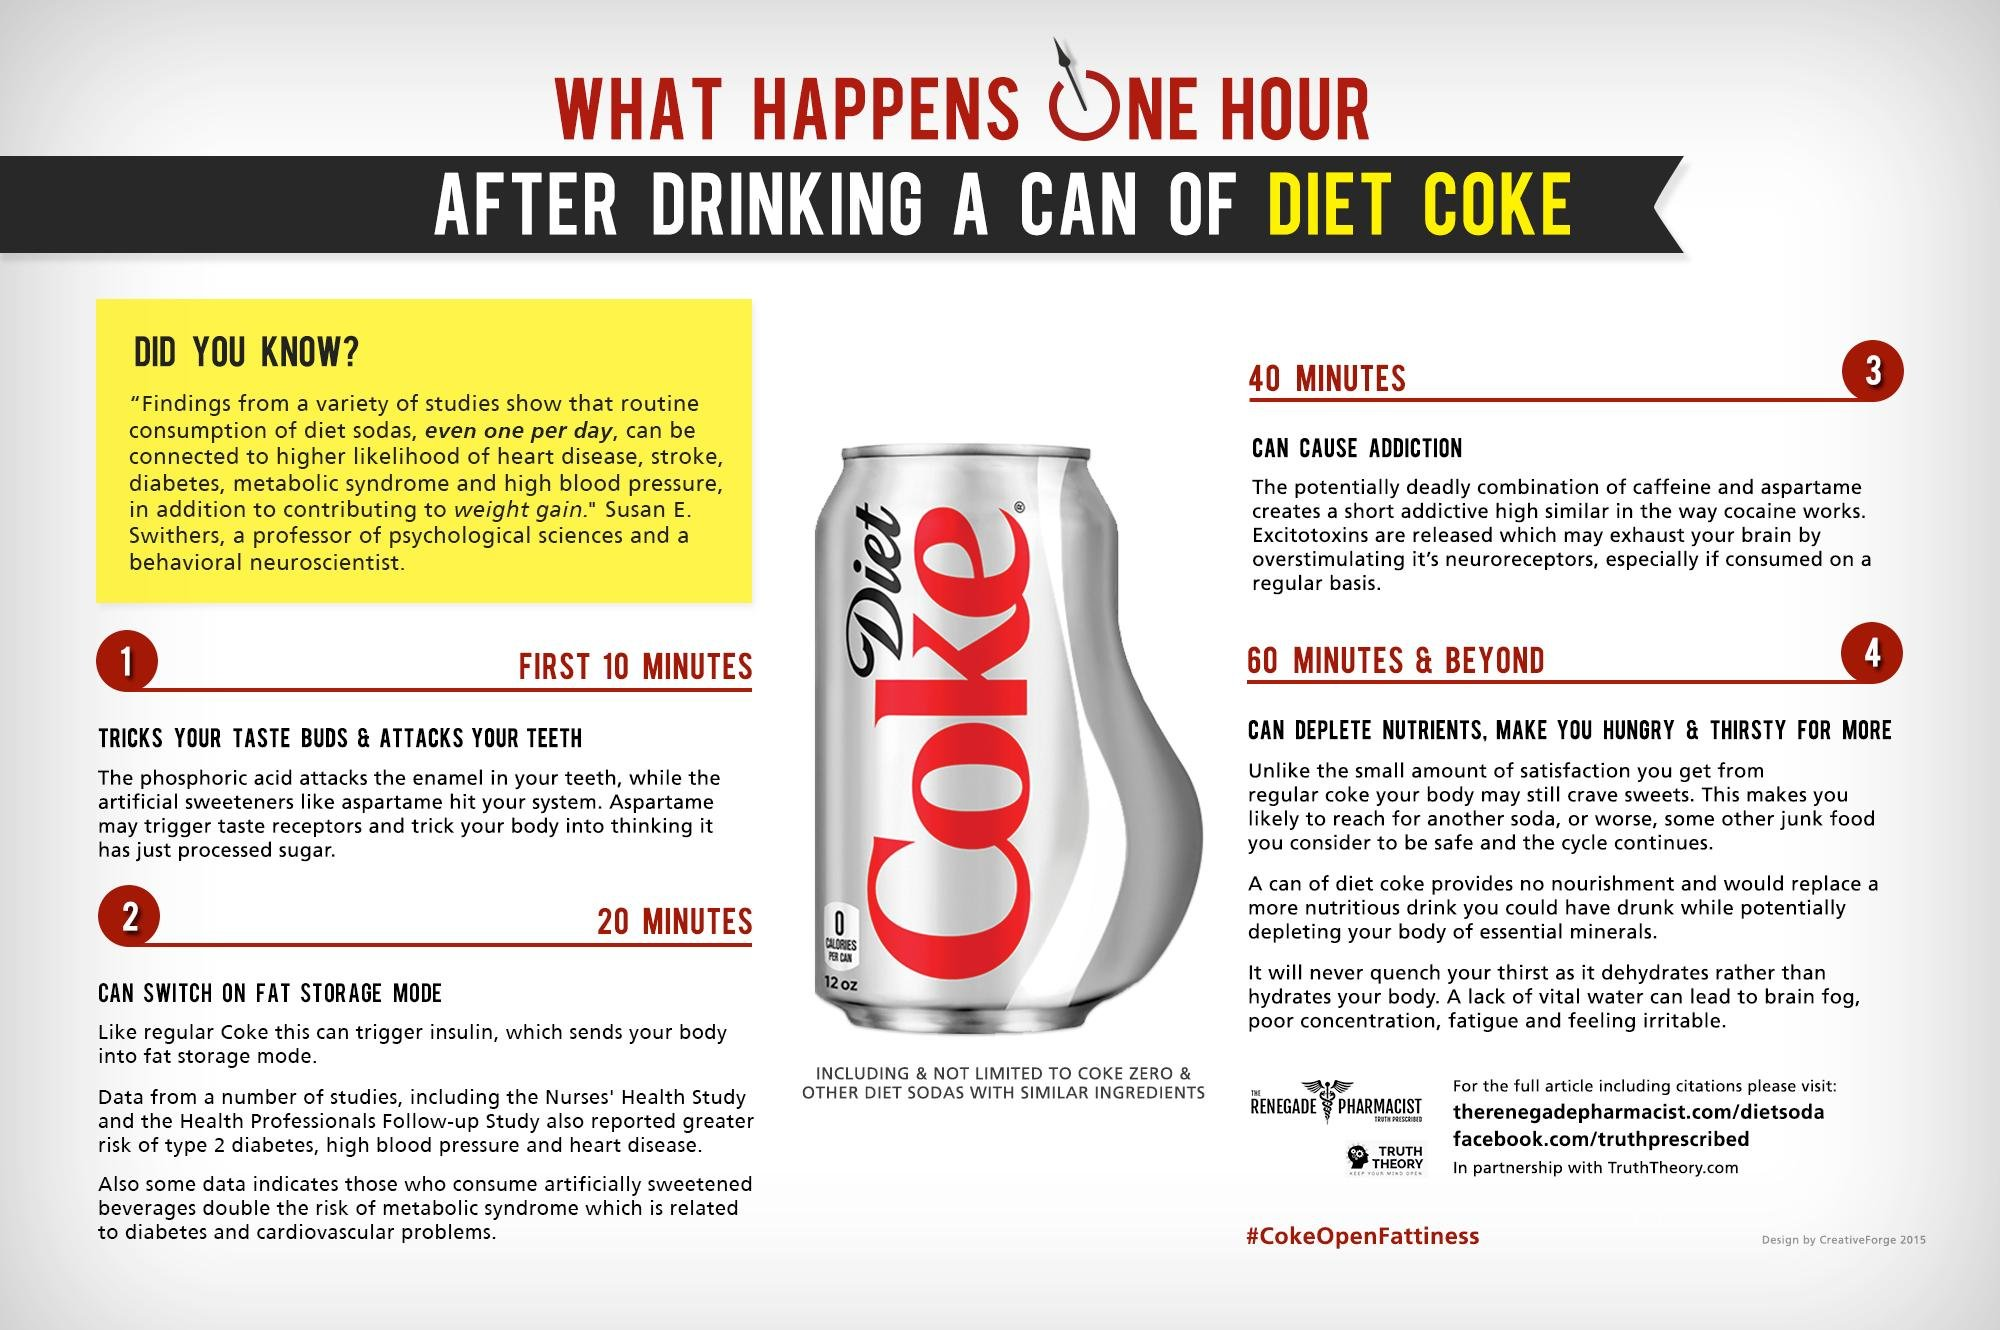 What Happens 1hr After Drinking Diet Coke, Coke Zero & Any Other Similar Diet Soda